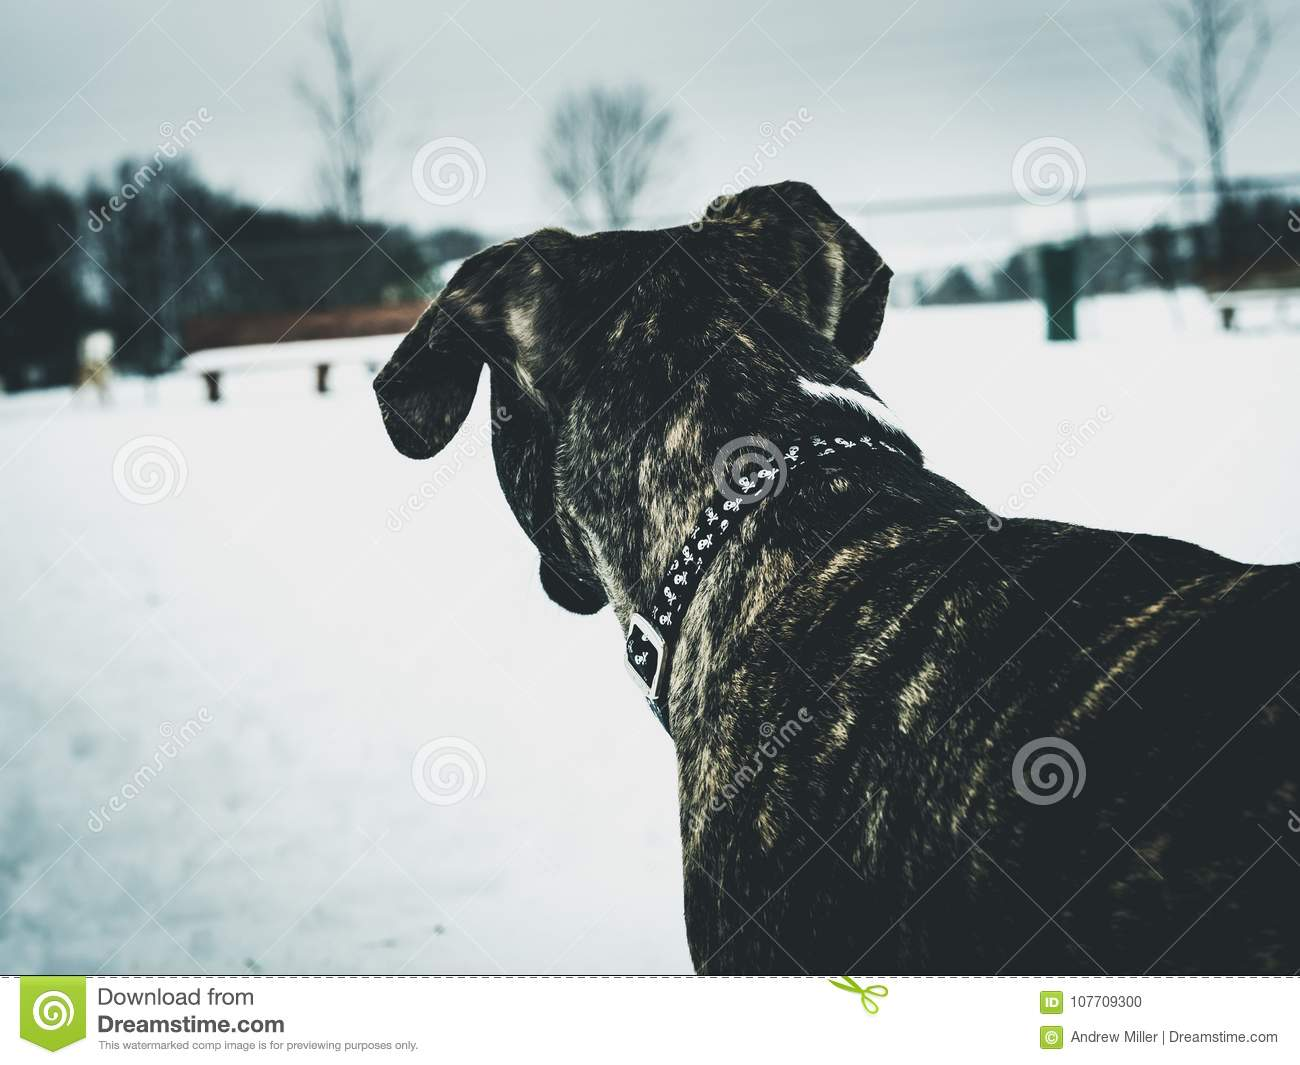 Dog looking away in snow